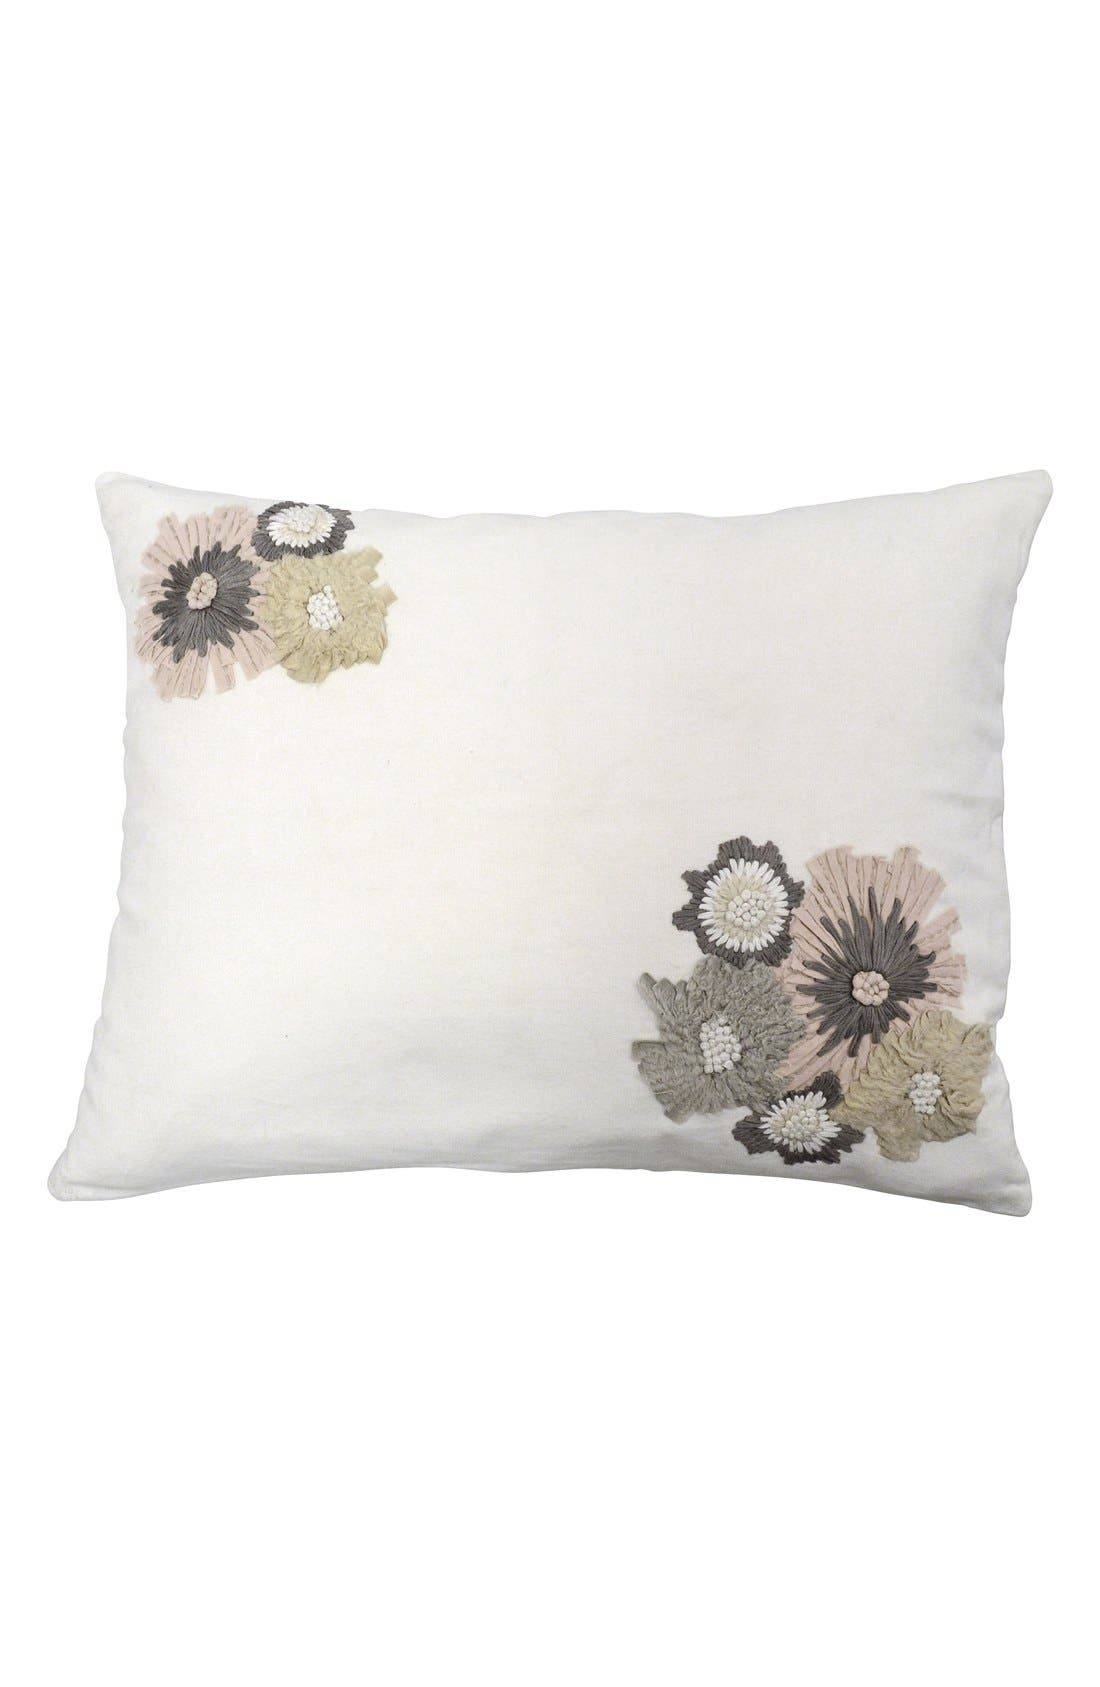 Main Image - DKNY 'Pure Indulge' Floral Pillow